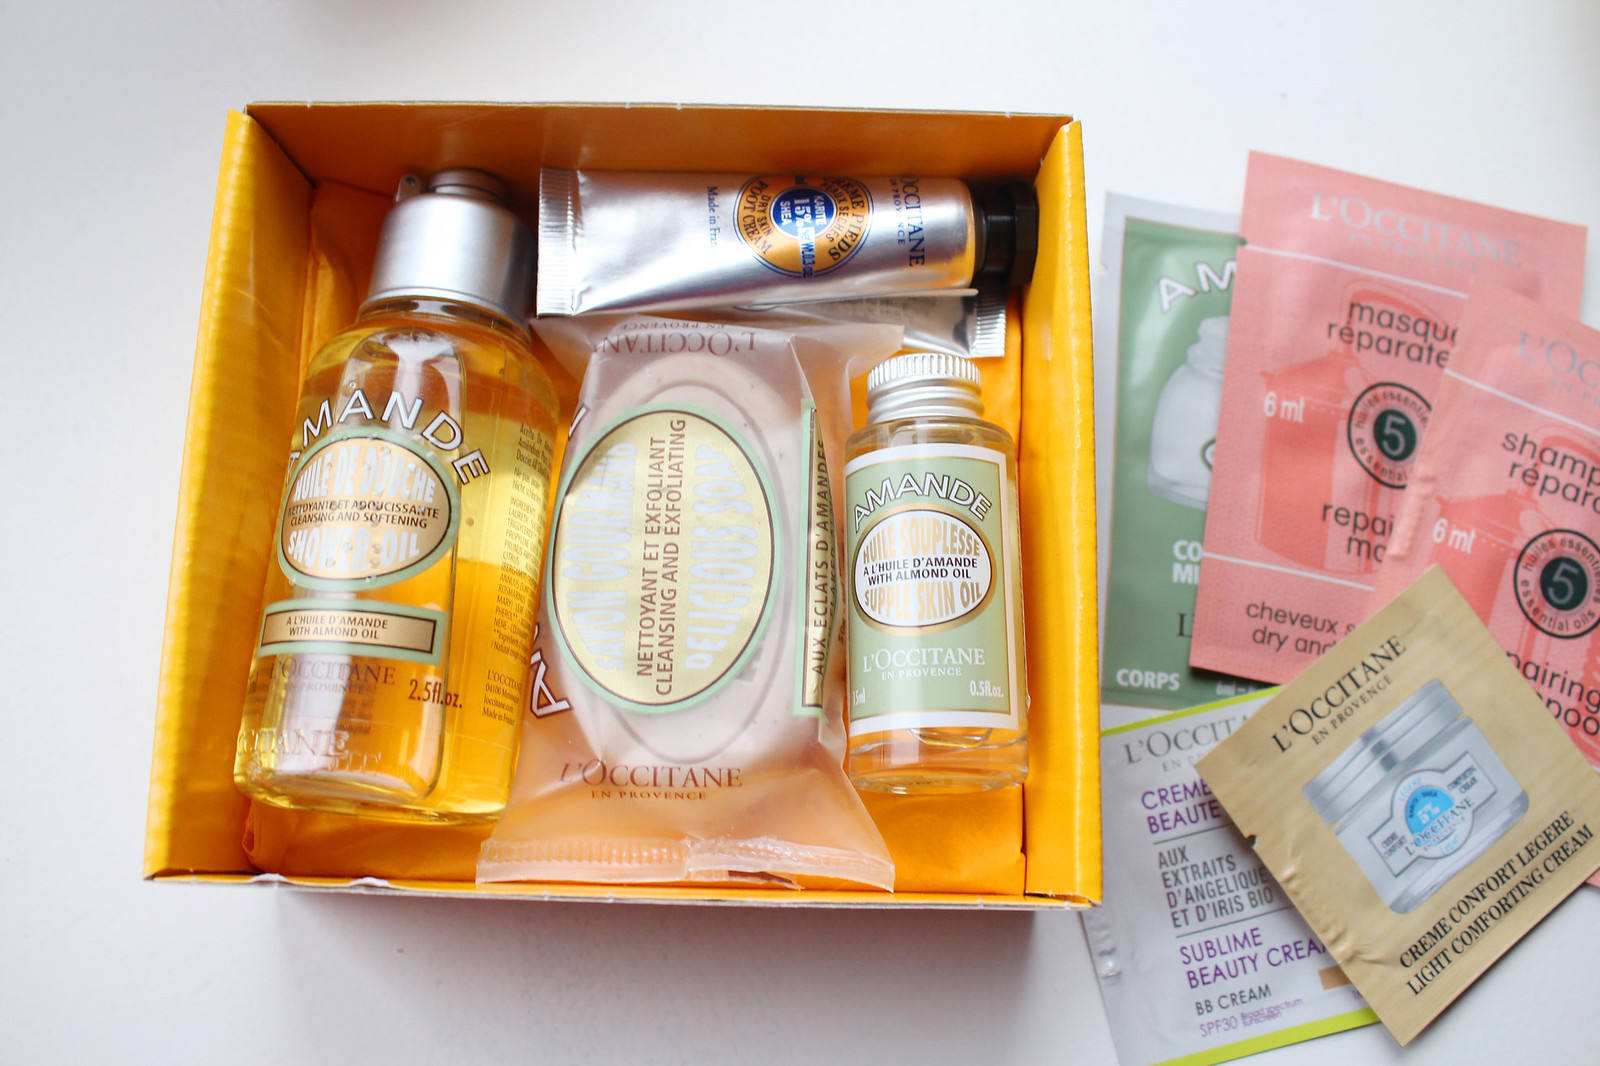 l'occitane-beauty-box-for-her-review